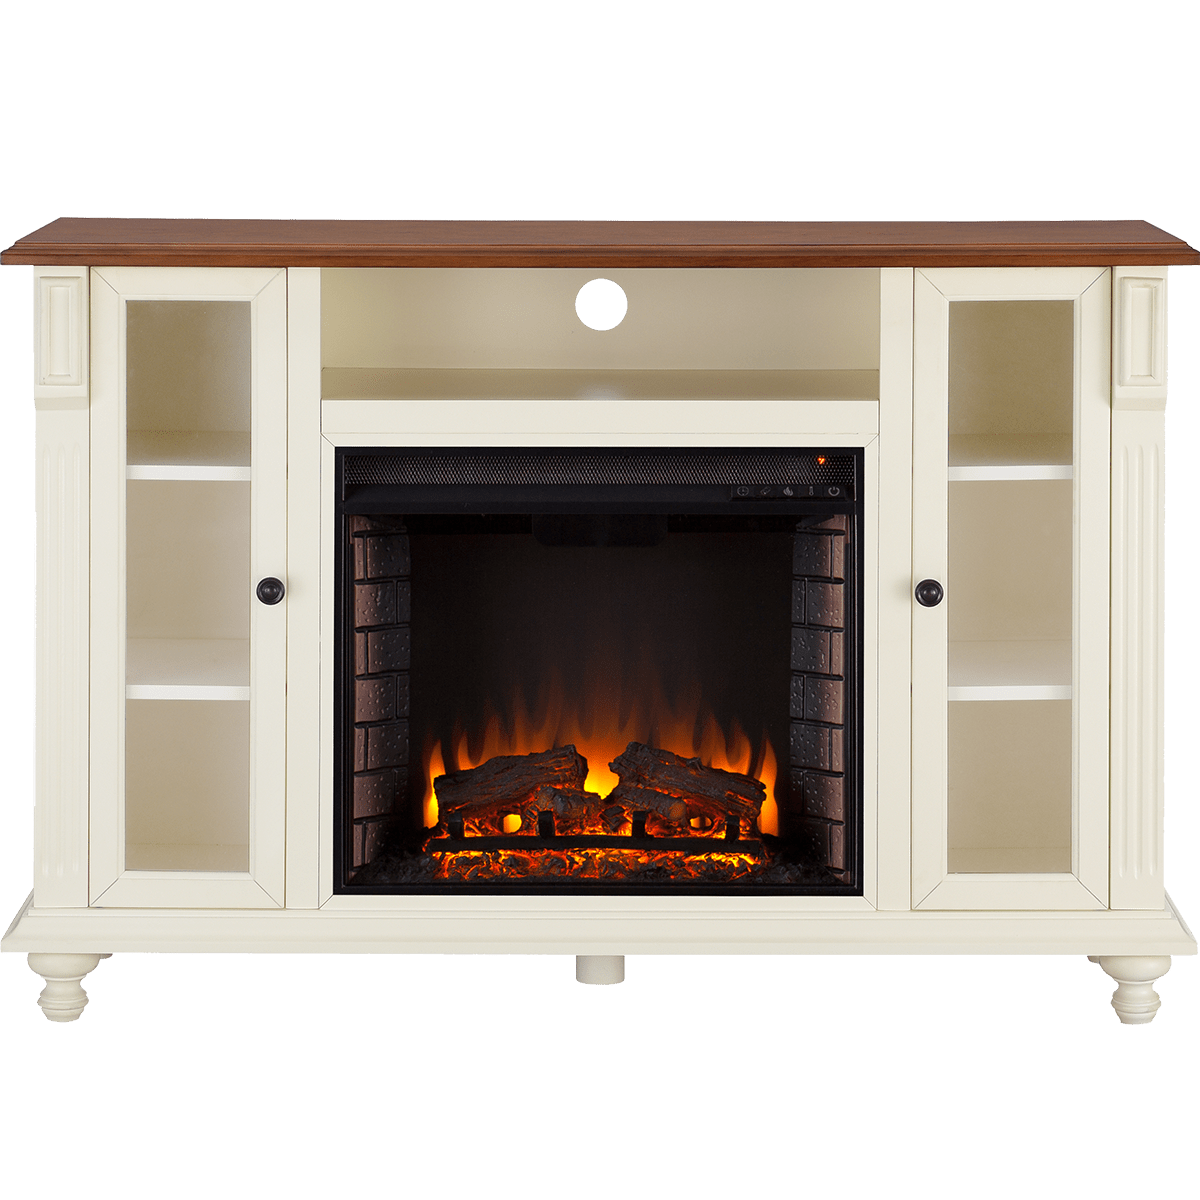 Super Southern Enterprises Carville Electric Fireplace Tv Stand Antique White W Walnut Interior Design Ideas Gentotthenellocom